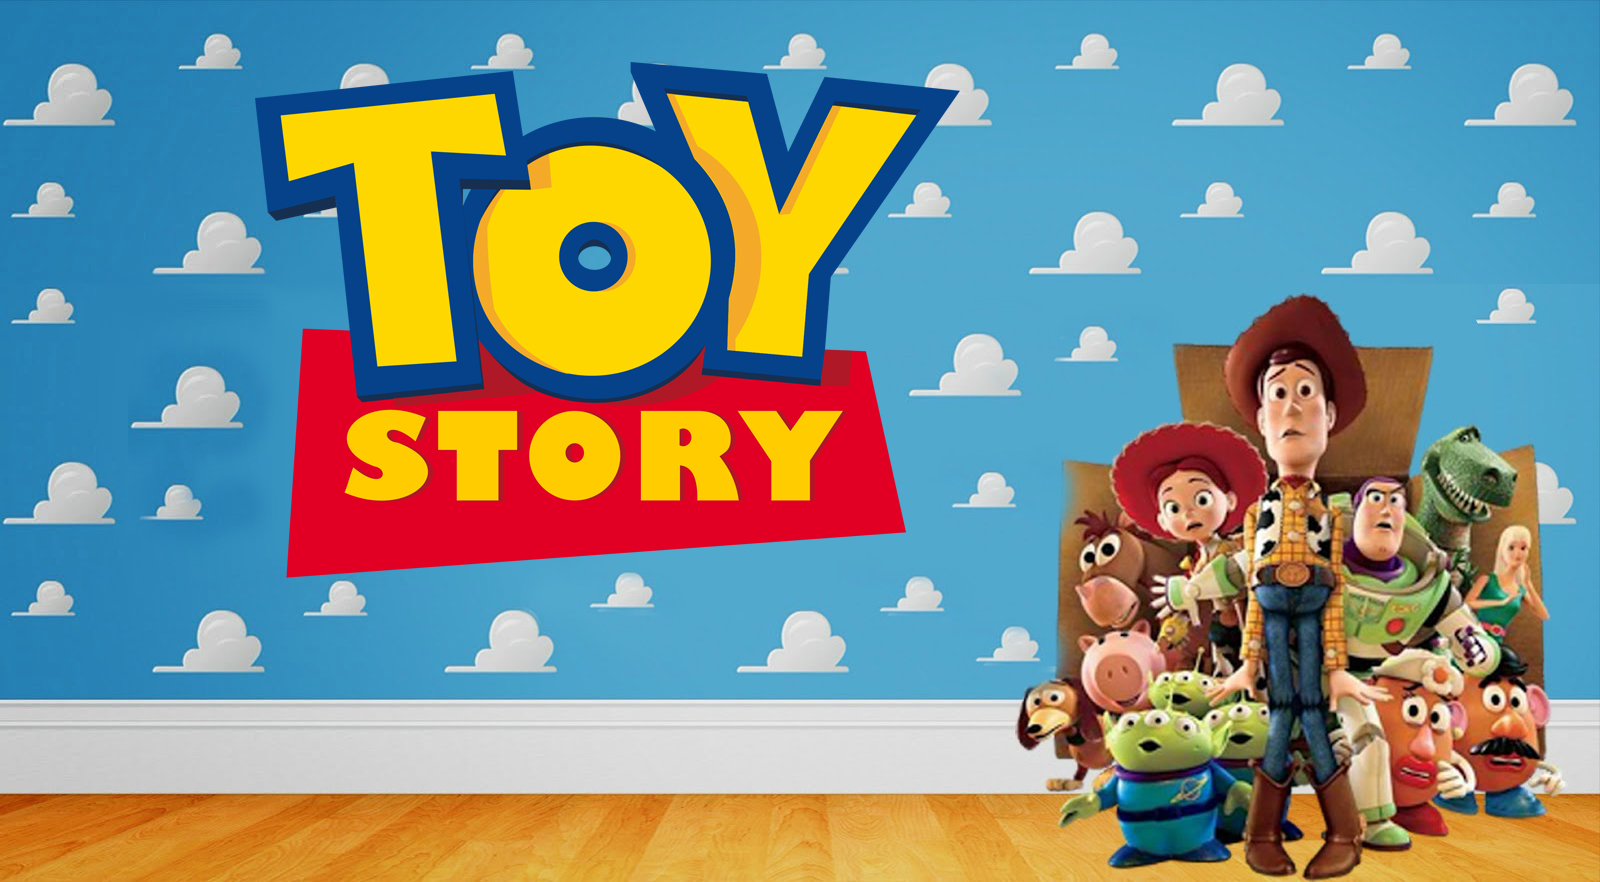 We love Toy Story!